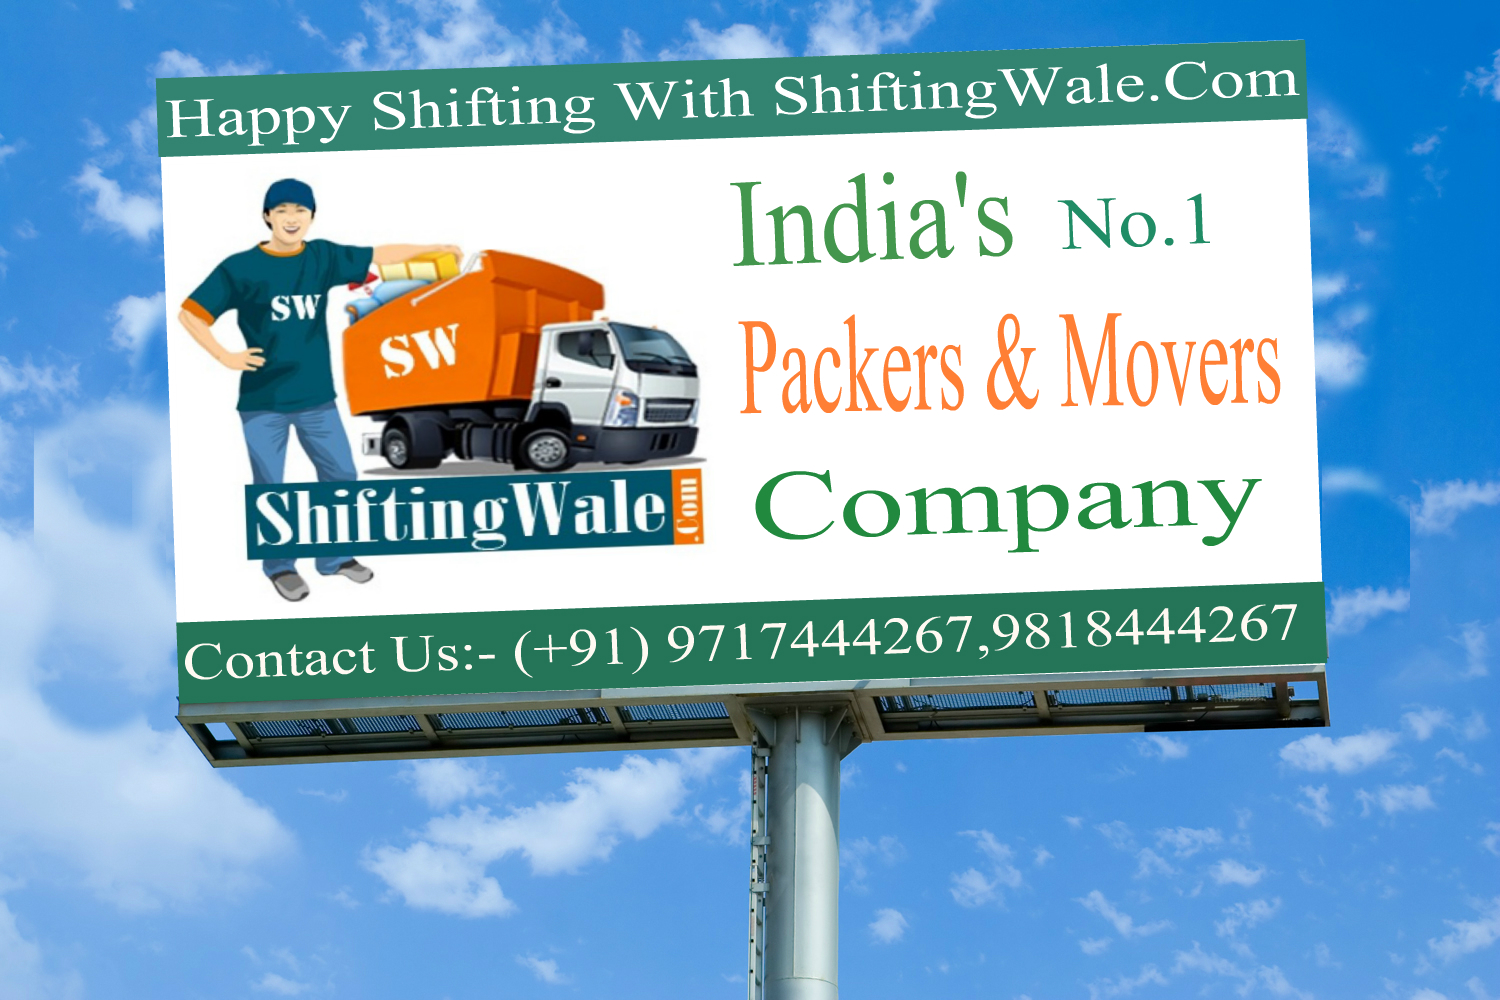 How We Can Find a Best Movers & Packers in Bangalore